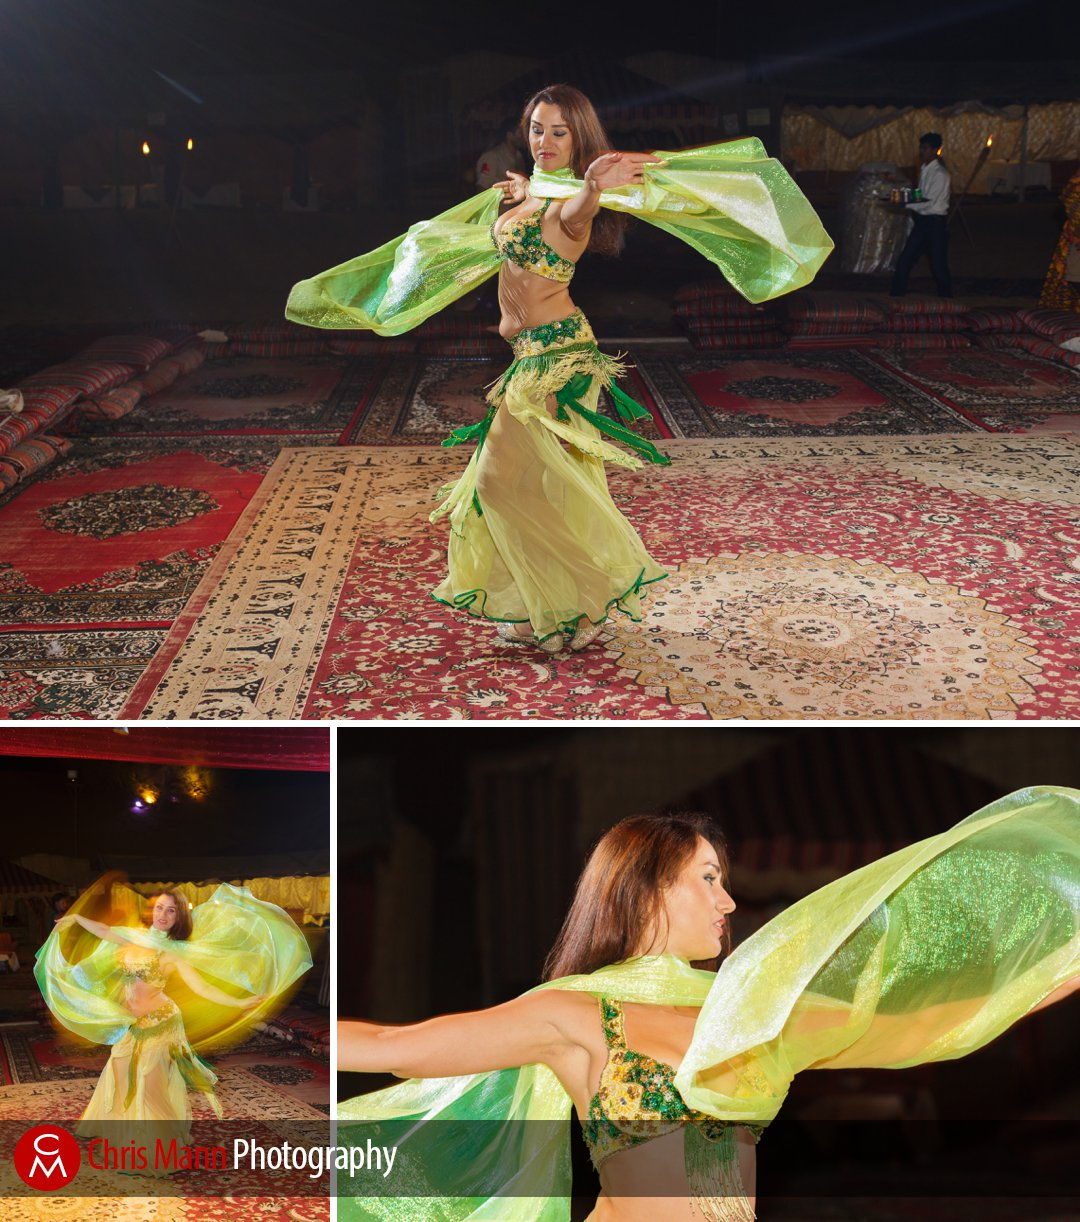 a belly-dancer entertains guests at a wedding in Dubai